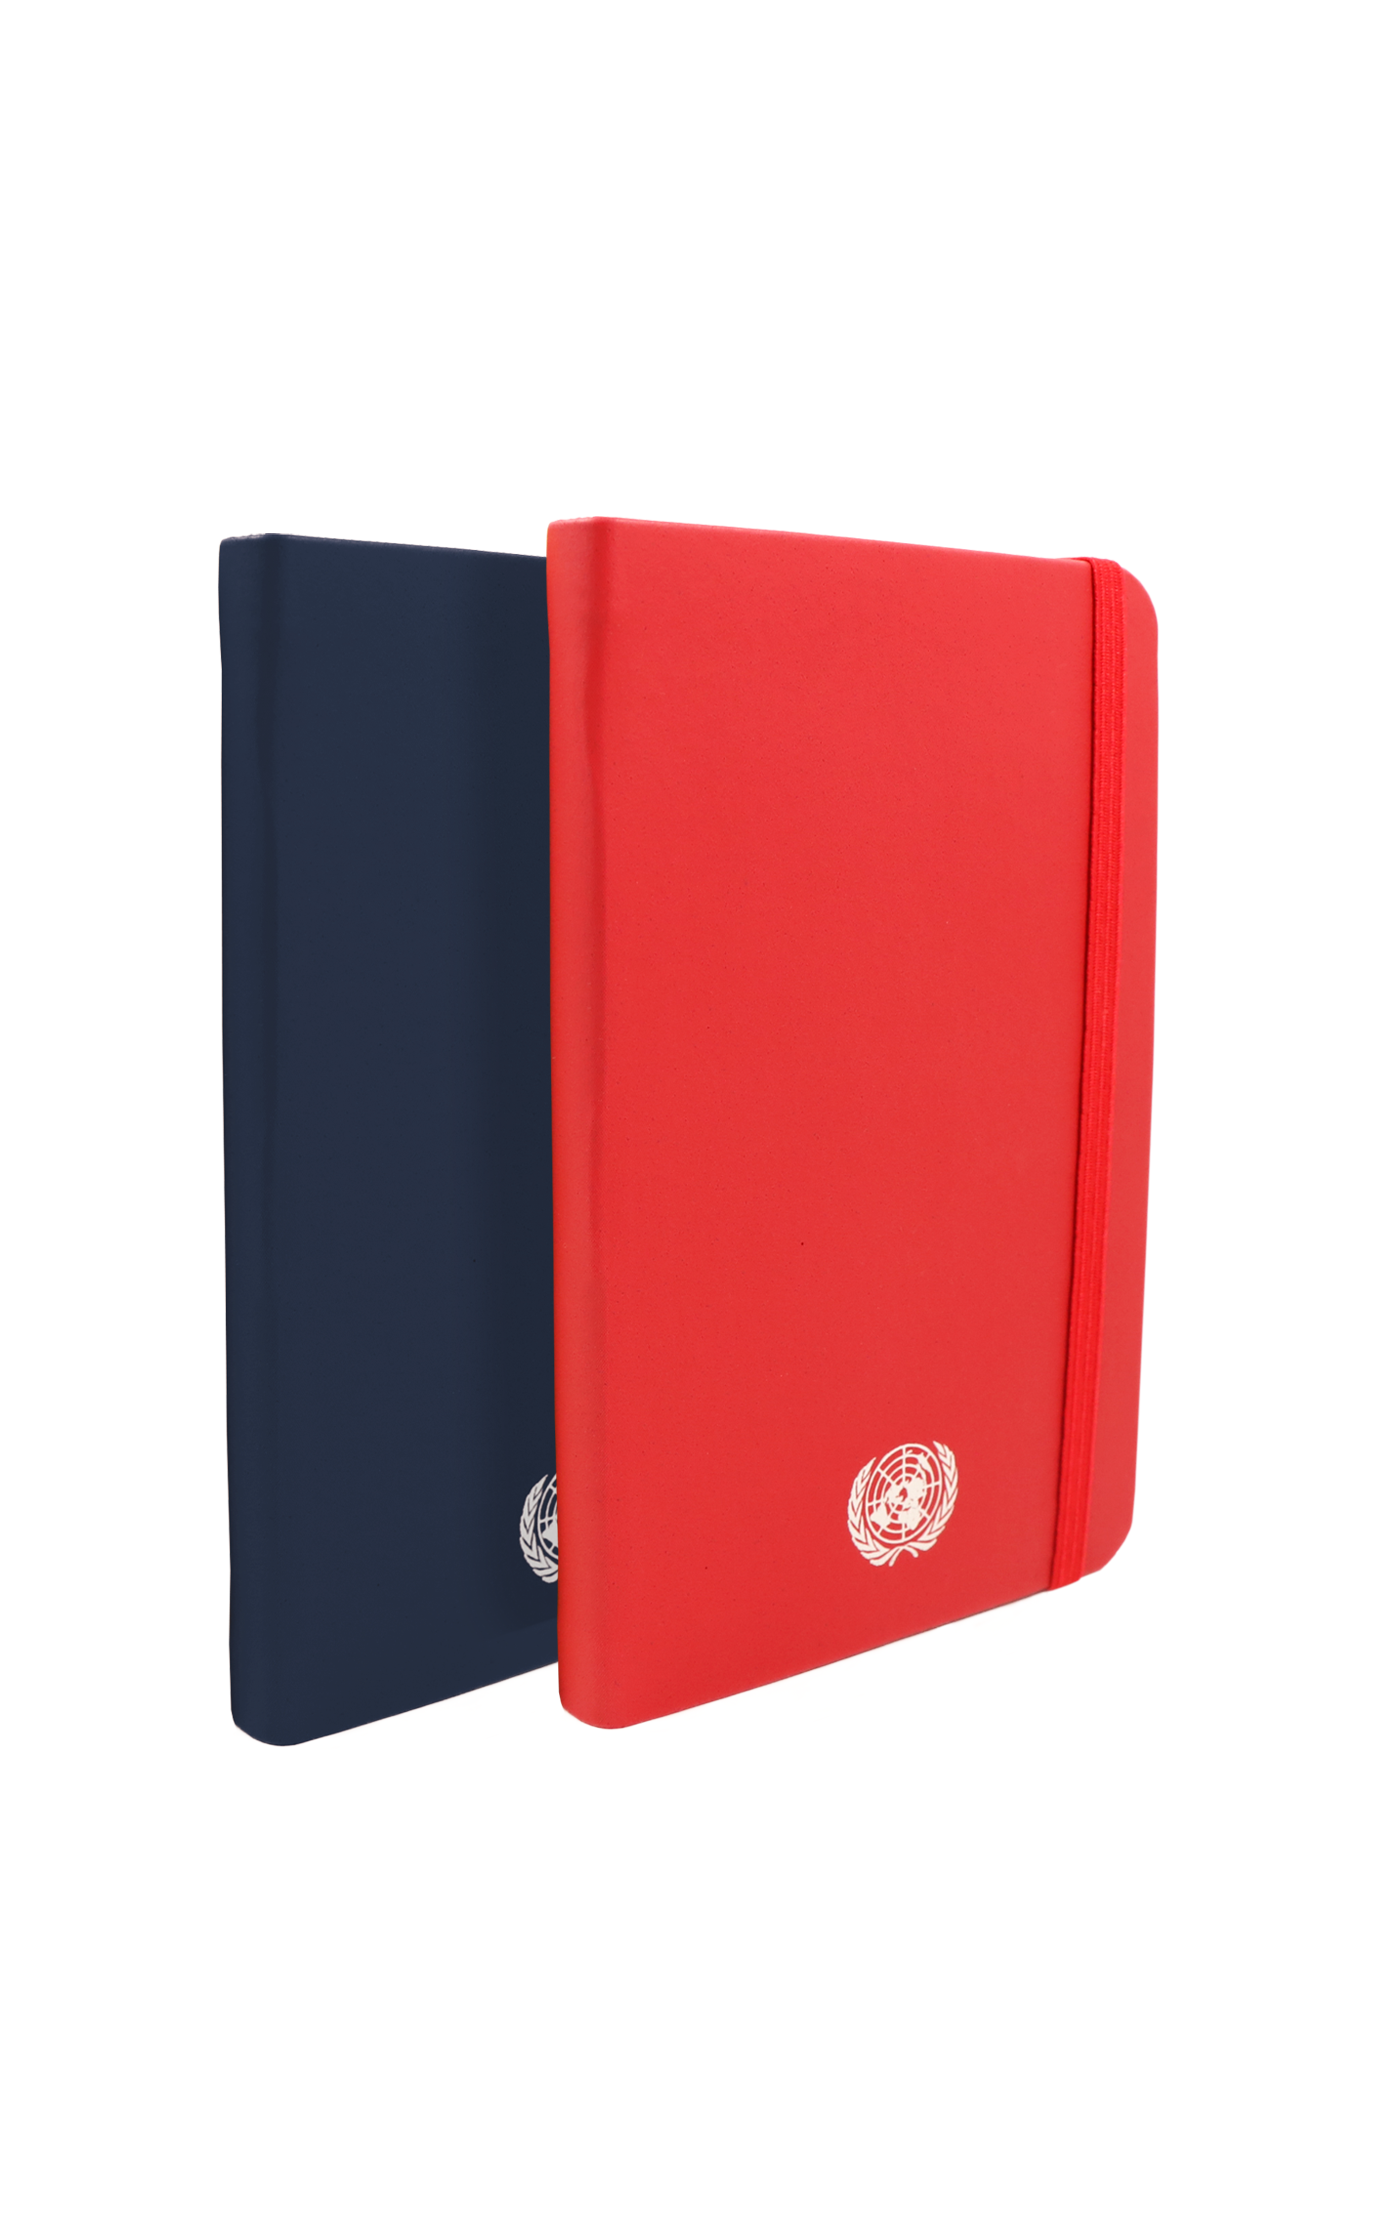 An image of two small sized, recycled leather, red and blue coloured journals with the UN Emblem embossed in silver centered at the bottom.